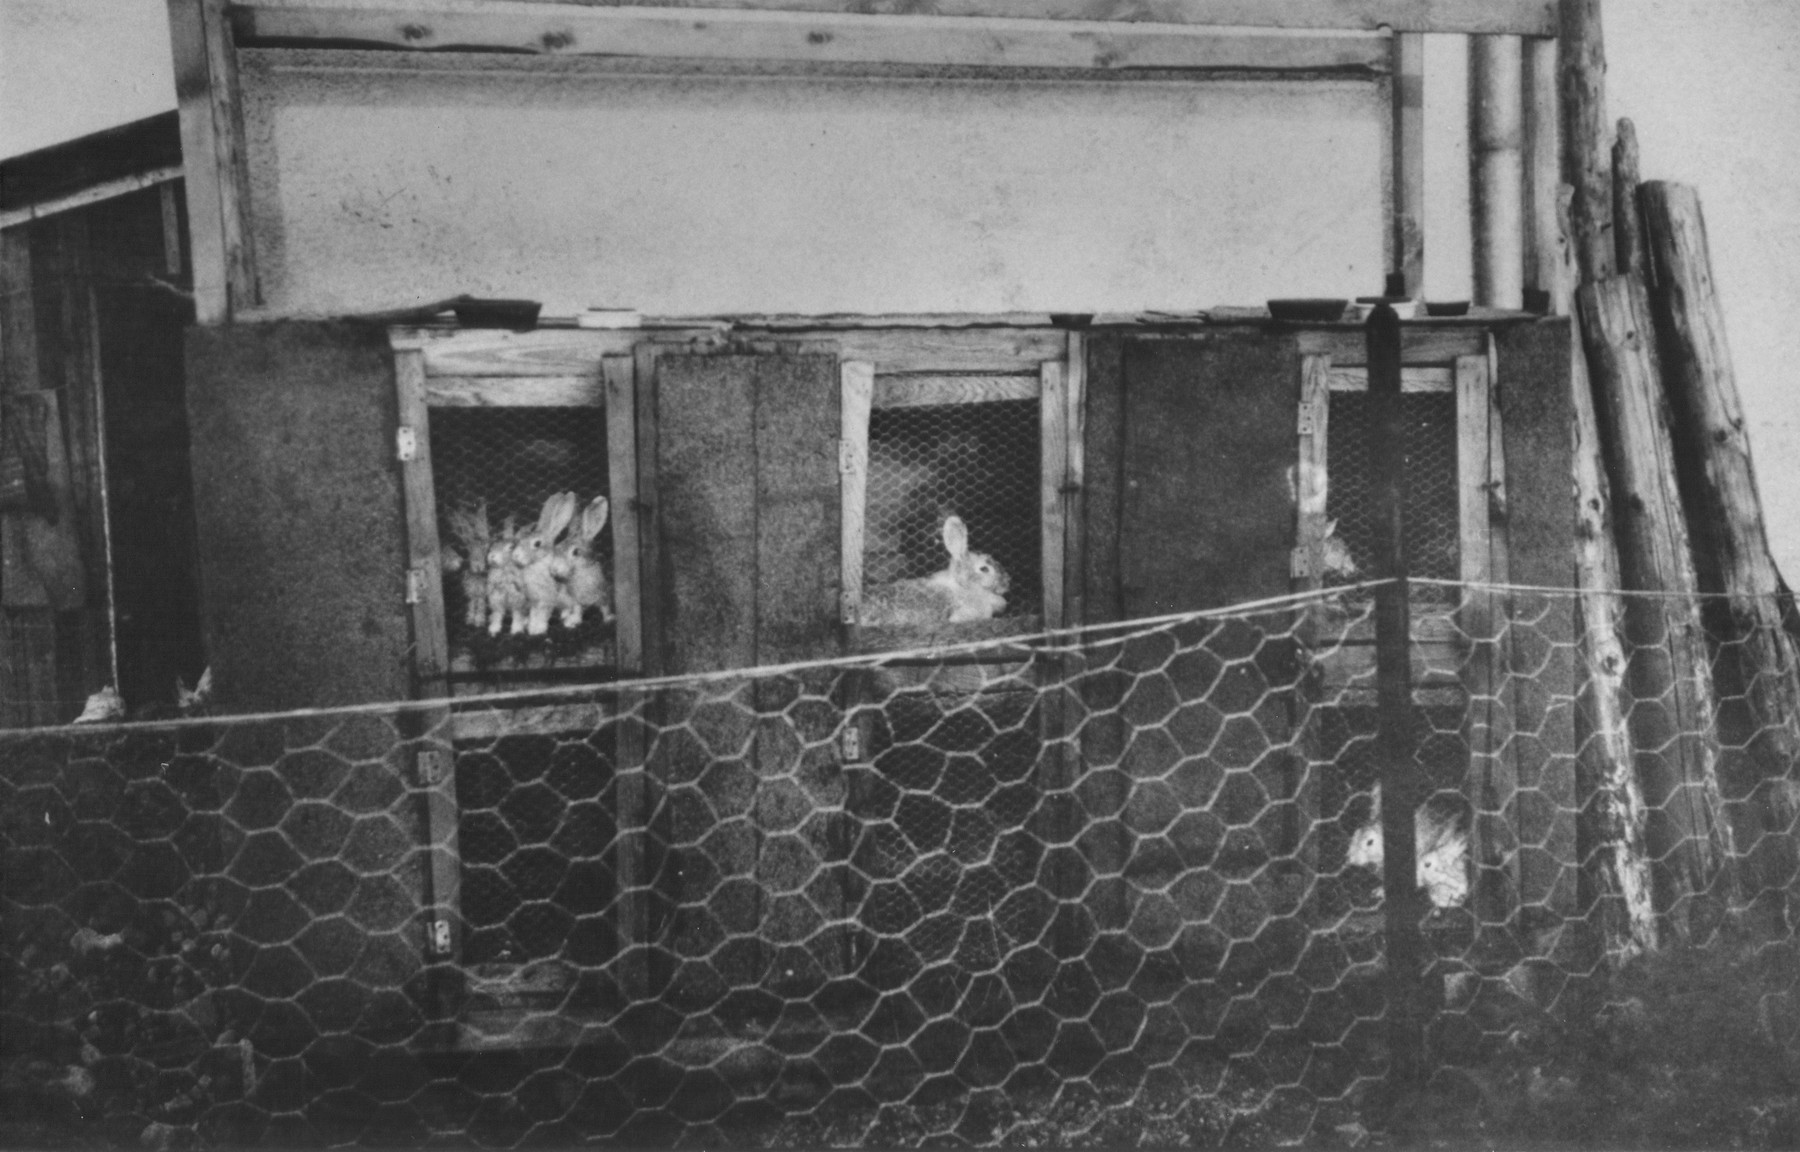 View of a rabbit hutch on Heinrich Himmler's farm in Waldtrudering, Germany.